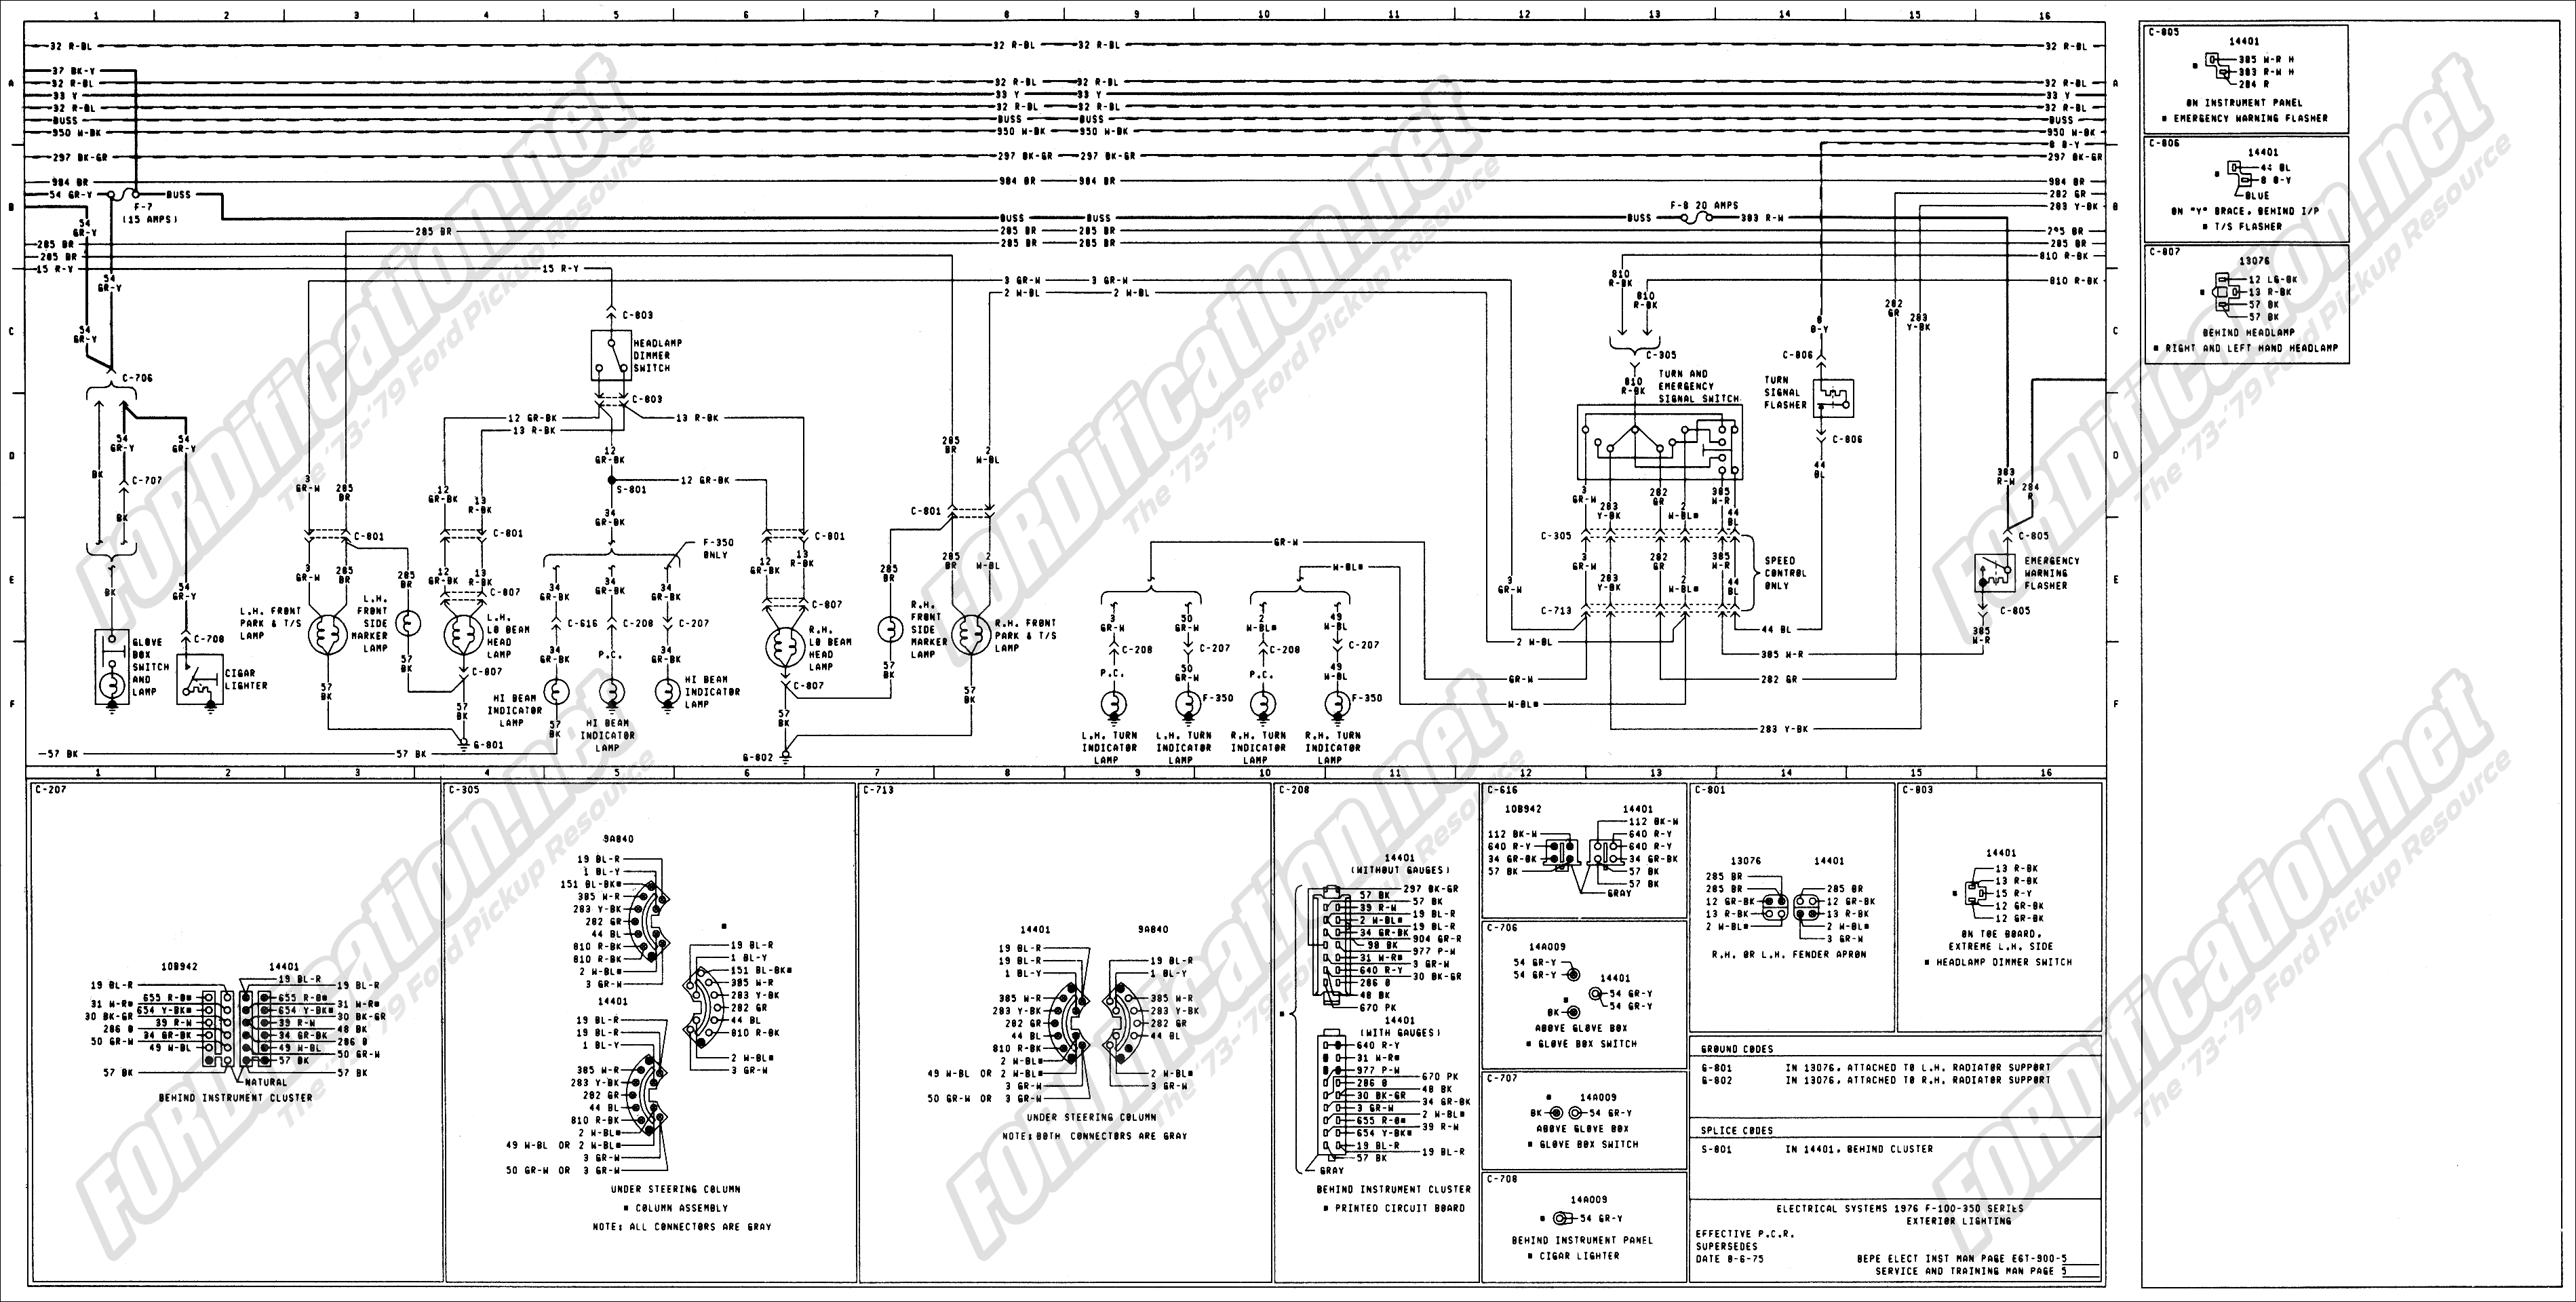 wiring_76master_5of9 1983 ford f100 wiring diagram wiring diagram simonand 1979 ford f100 fuse box diagram at creativeand.co